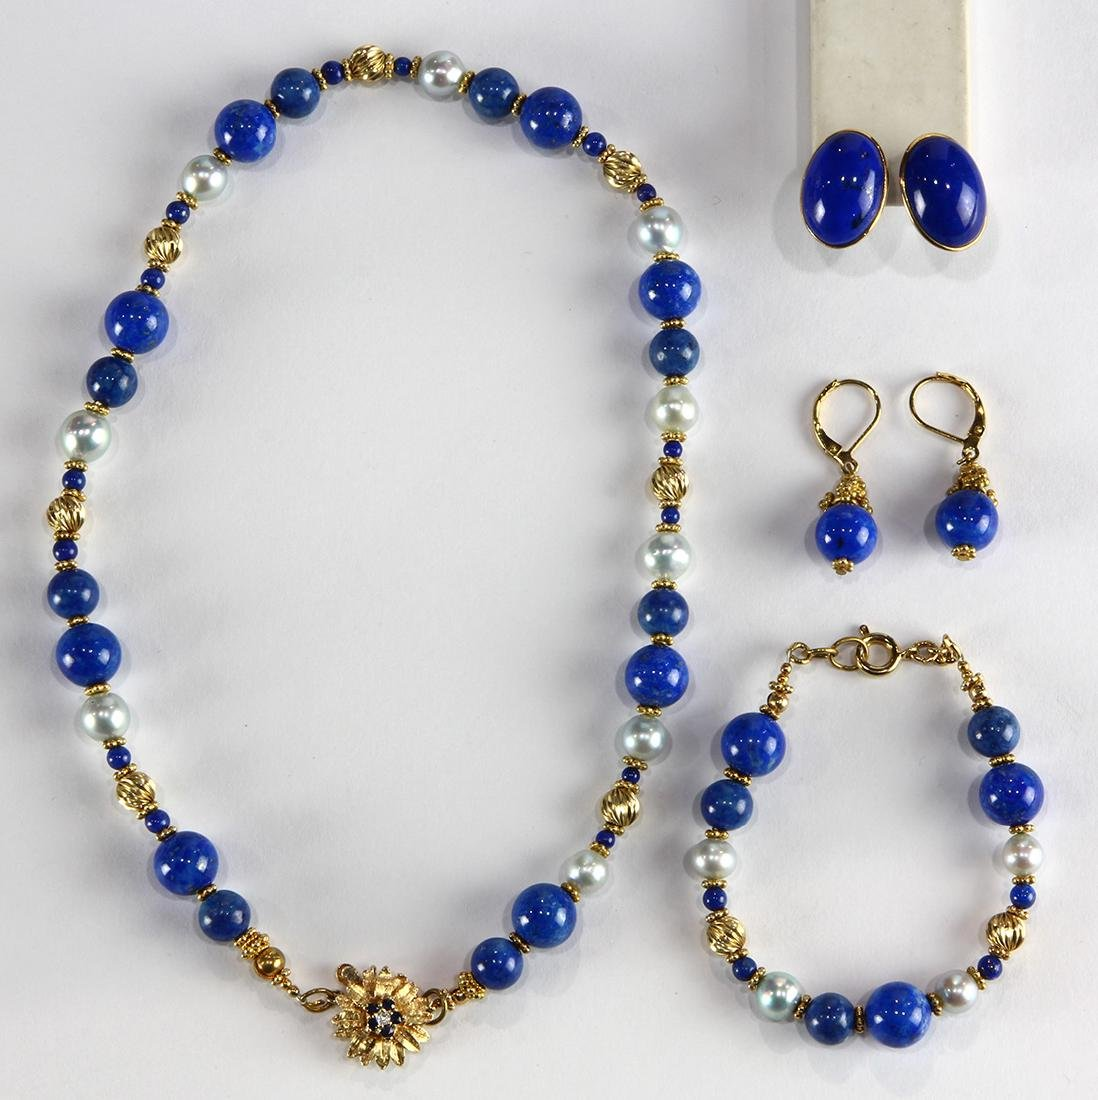 (Lot of 4) Lapis lazuli, cultured pearl and yellow gold